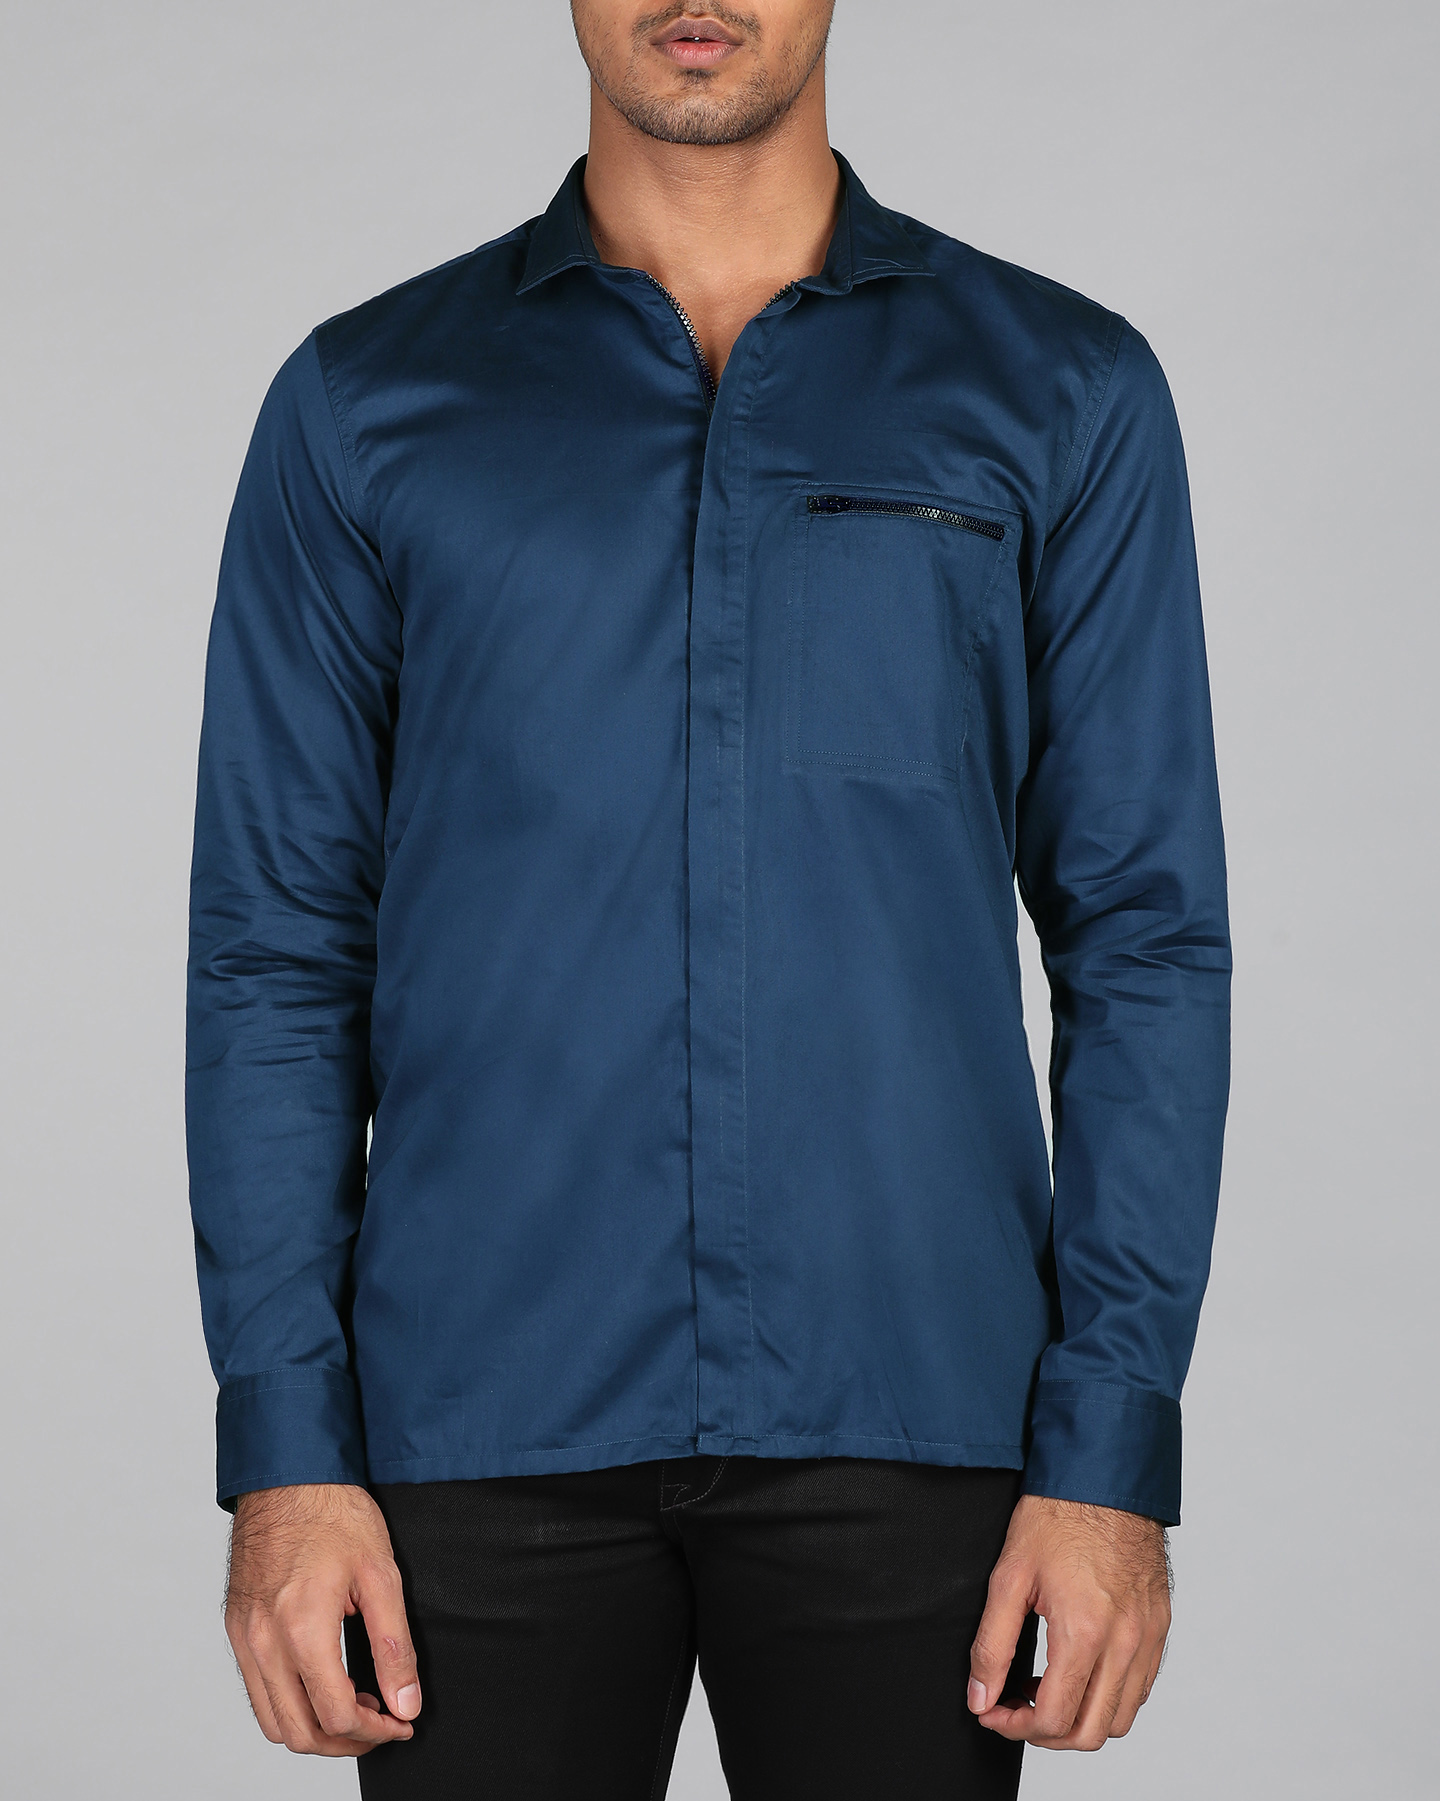 Midnight Blue Zipper Shirt